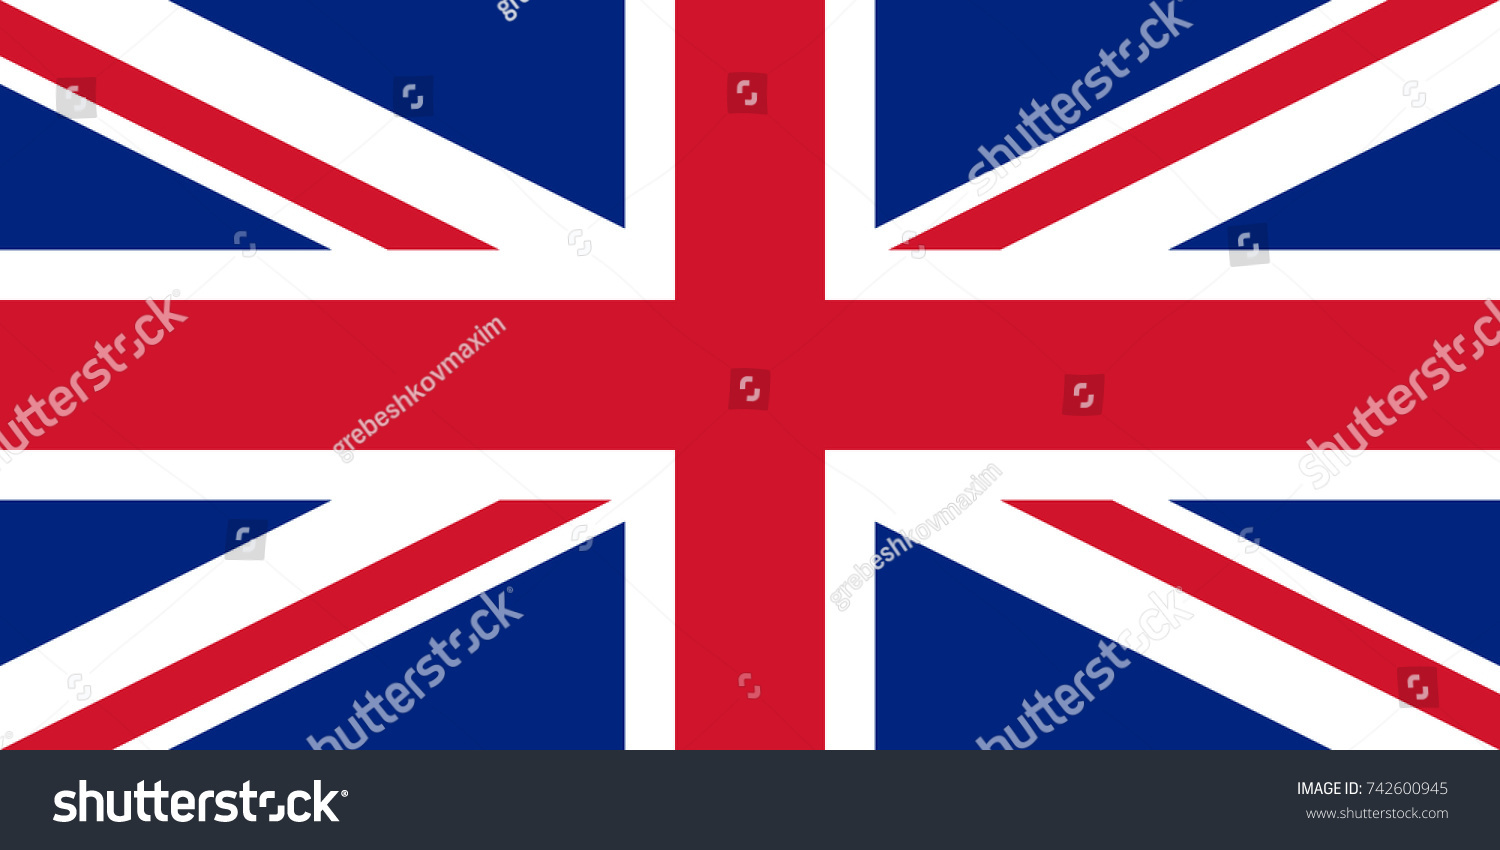 Simple Flag United Kingdom British Flag Stock-Vektorgrafik 742600945 ...